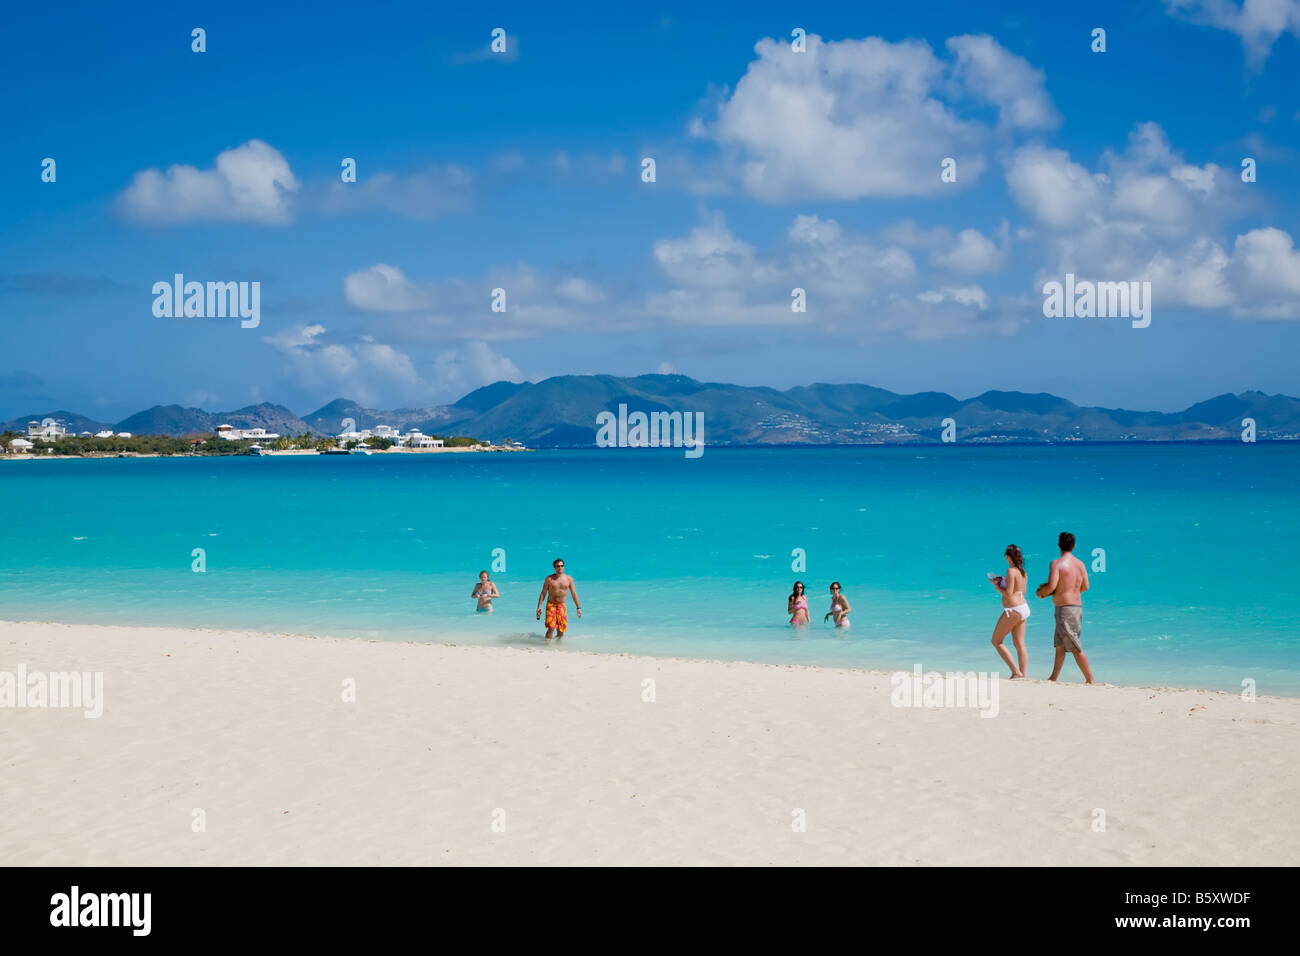 Rendezvous Bay Beach On The Caribbean Island Of Anguilla In British West Indies